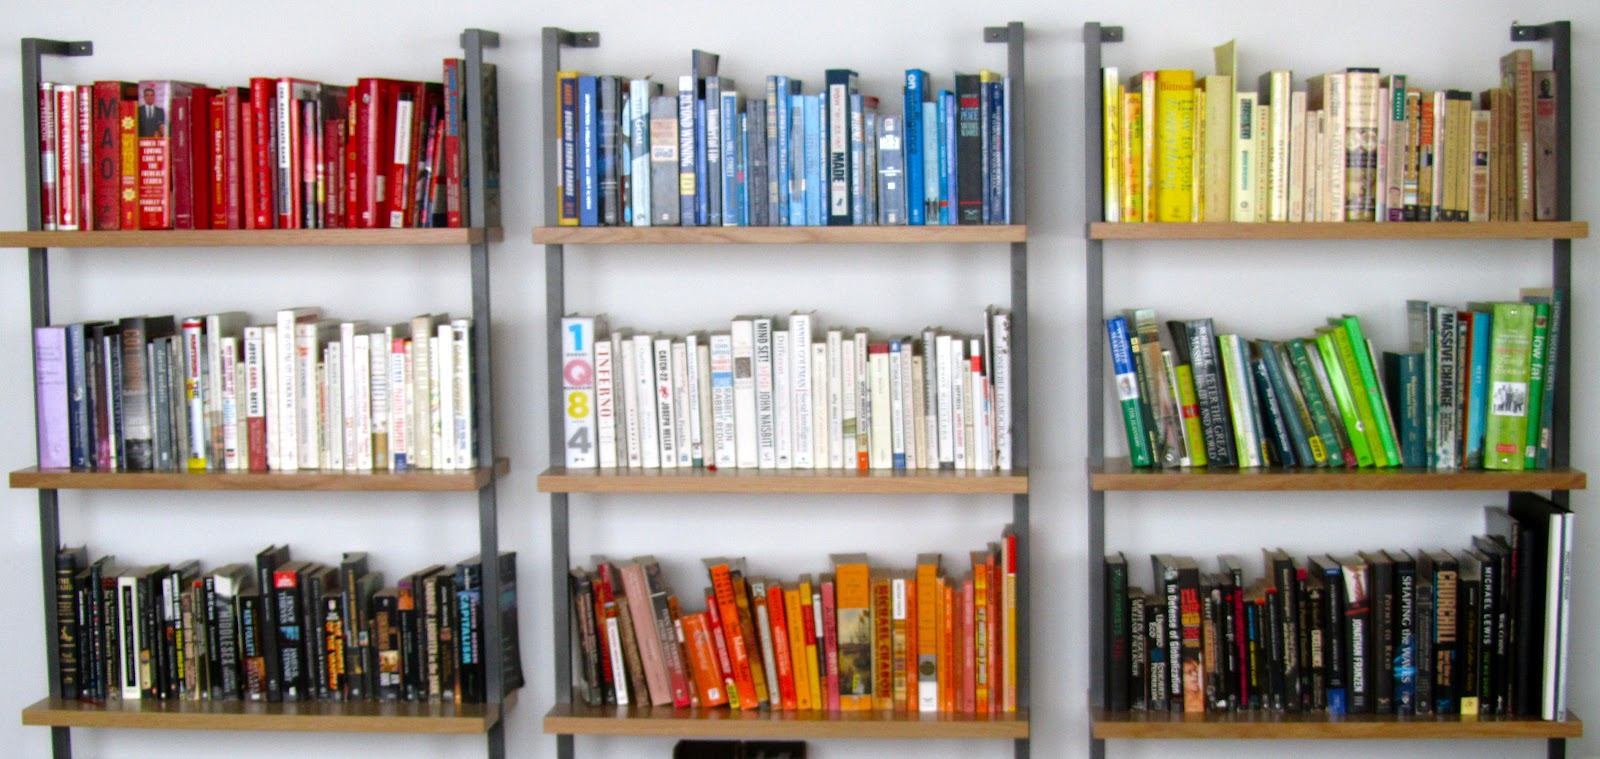 Bookshelves color - Holy Moly After Working With My Client They Organized This Bookshelf All On Their Own I Love The Color Grouping With The Books